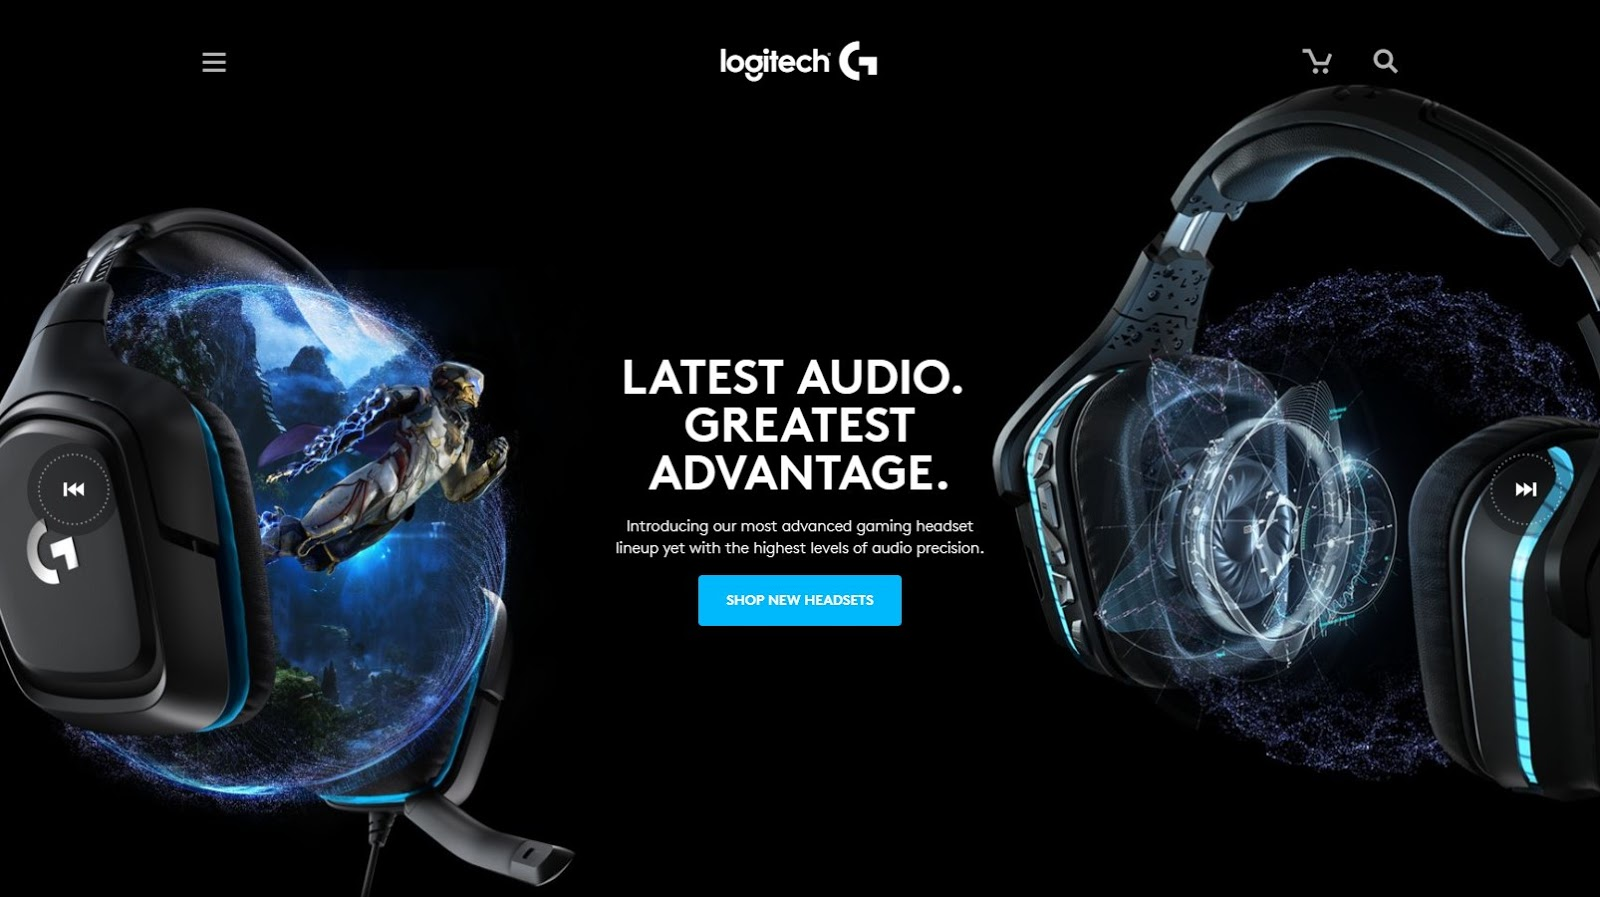 420c2b41845 And that's just what we did for the new G935 and G432 headsets, intrinsic  fan favorites that got a complete overhaul. Everything was improved ...  except the ...